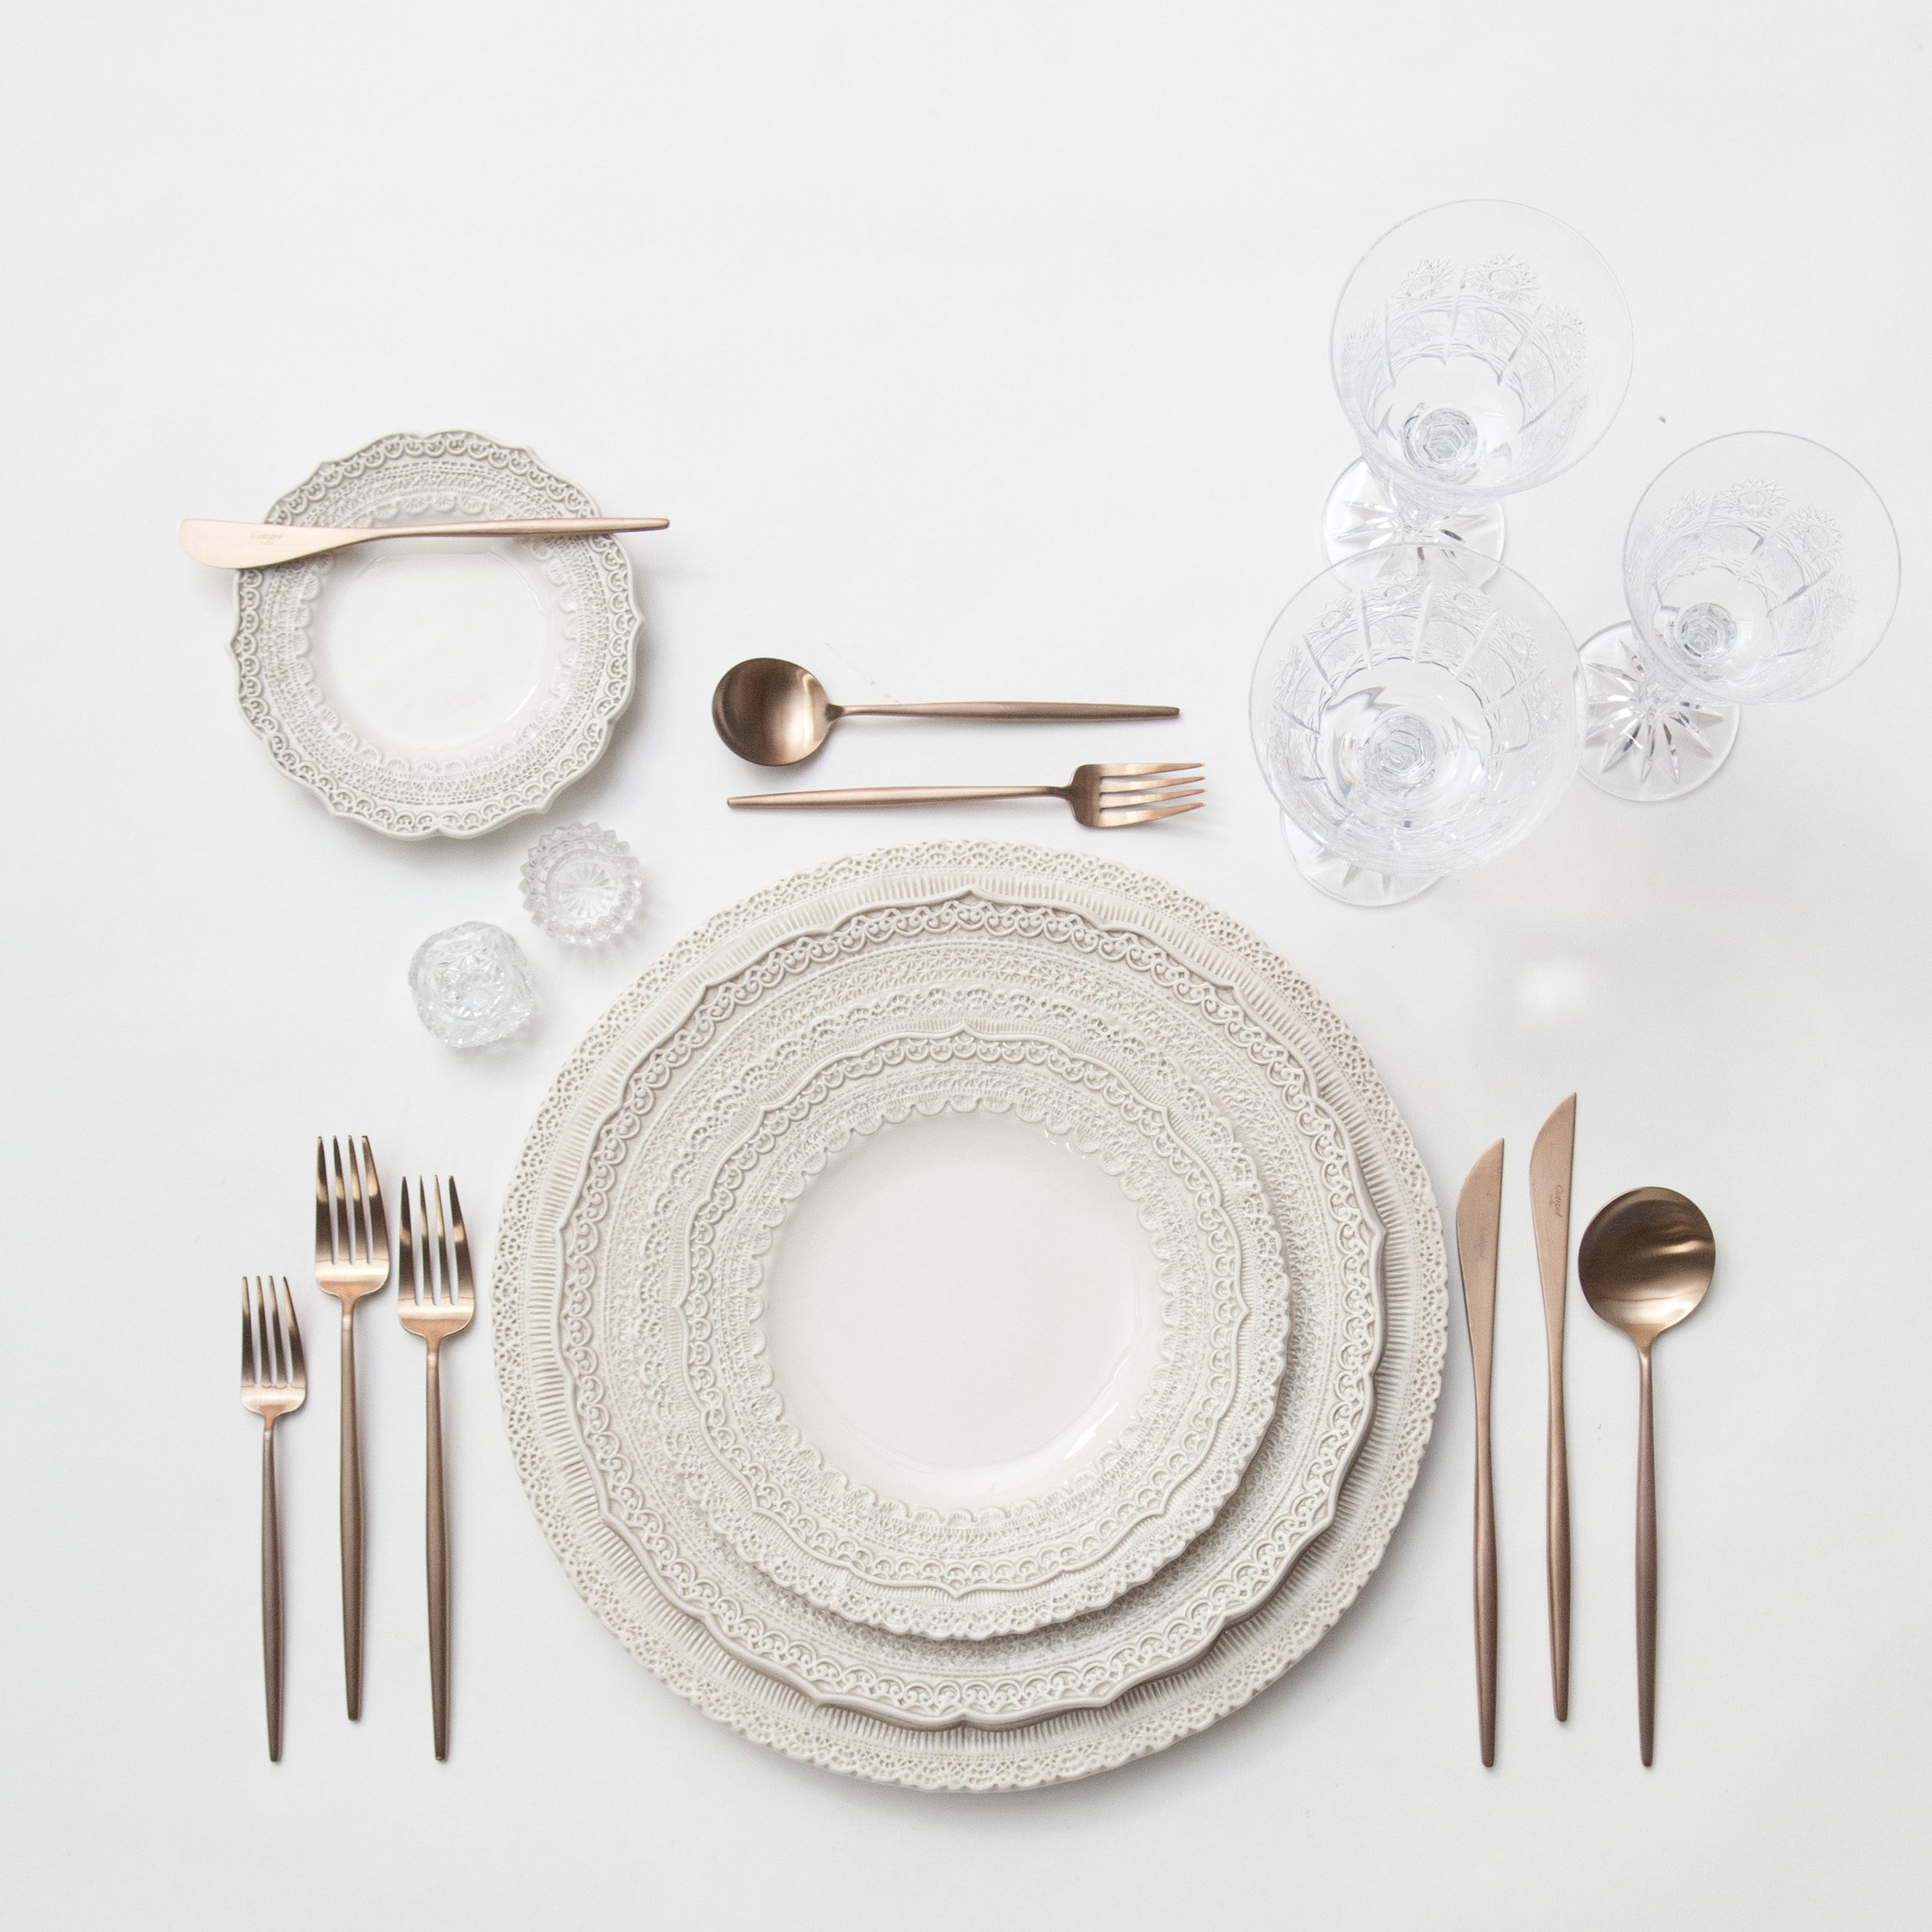 RENT: Lace Chargers/Dinnerware in White + Moon Flatware in Brushed Rose Gold + Czech Crystal Stemware + Antique Crystal Salt Cellars  SHOP:Moon Flatware in Brushed Rose Gold